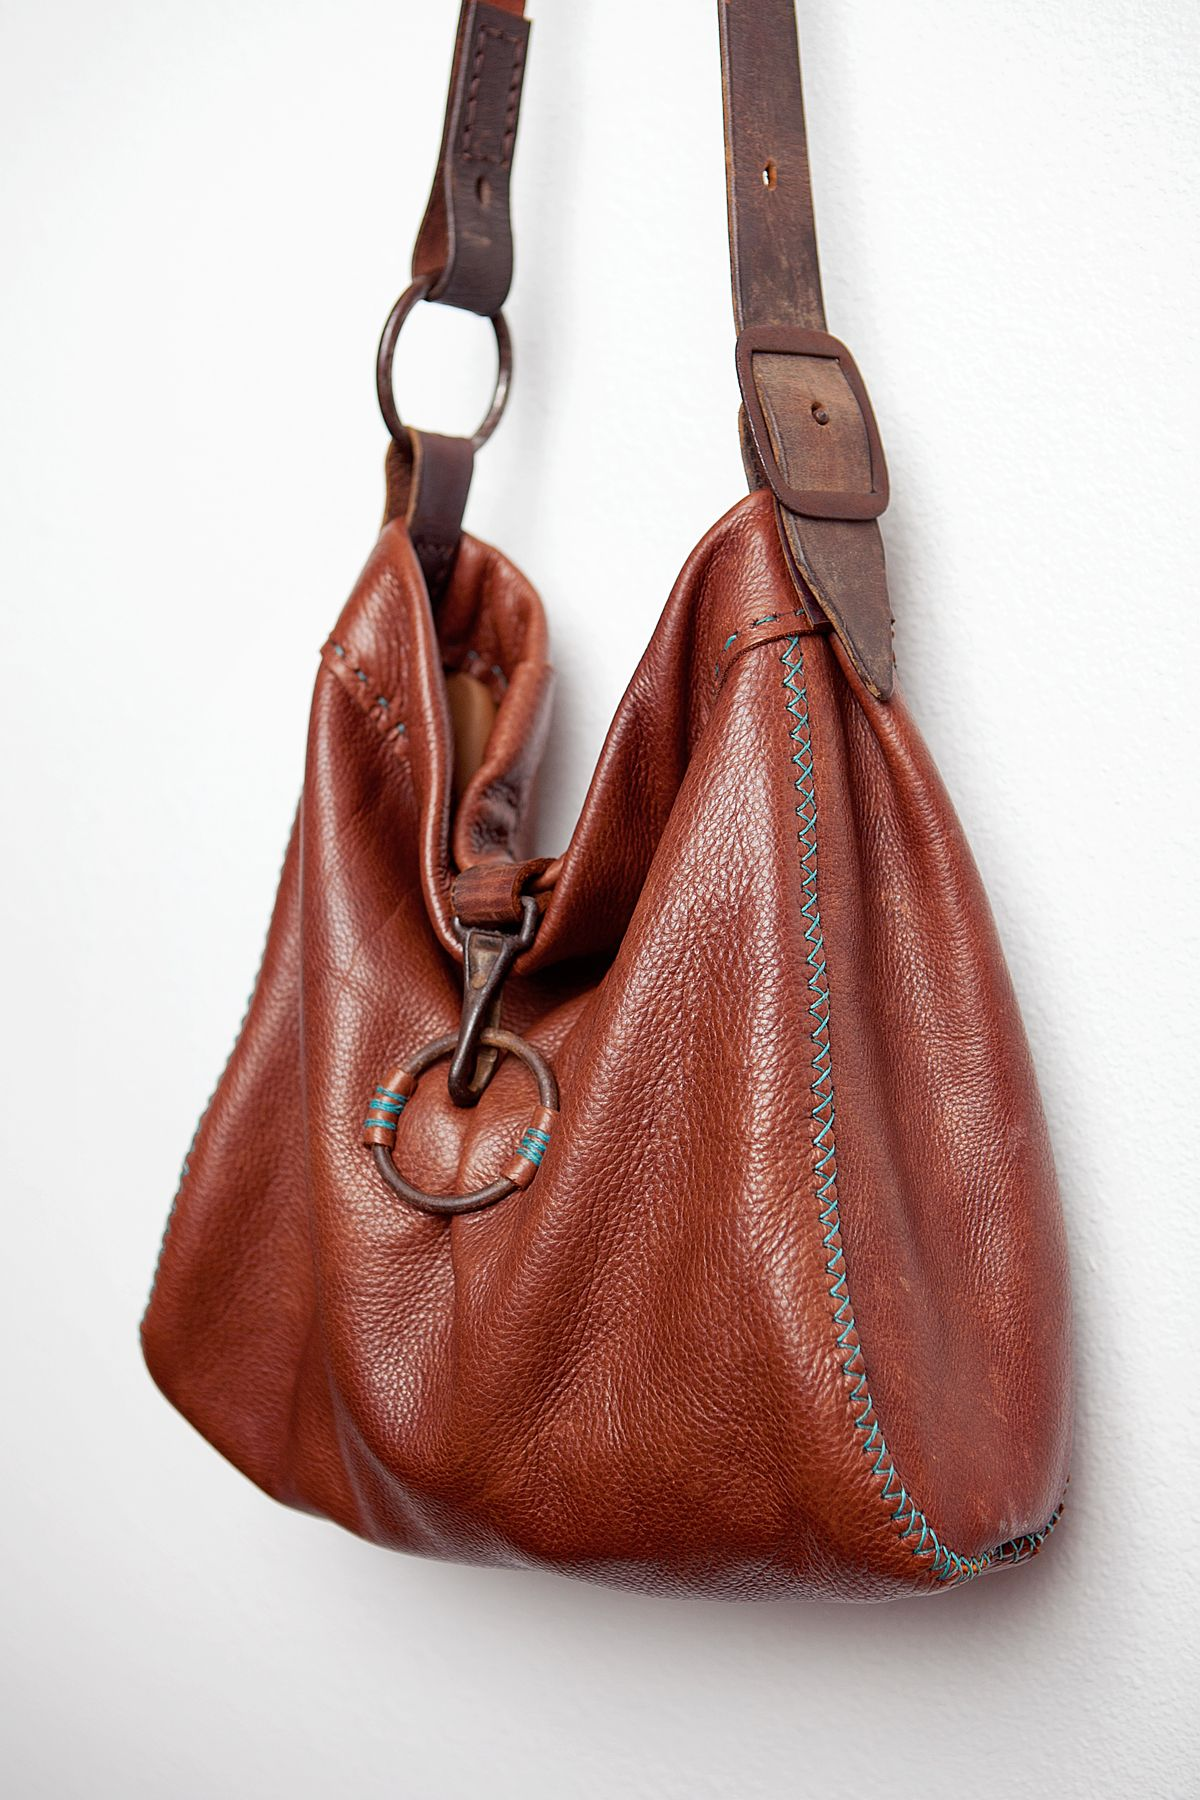 CIBADO leather bags - Soft supple and thick brown leather is carefully hand  sewn with the cross stitch on the gussets. Entirely hand sewn with waxed  thread ... 7598da6f3a388